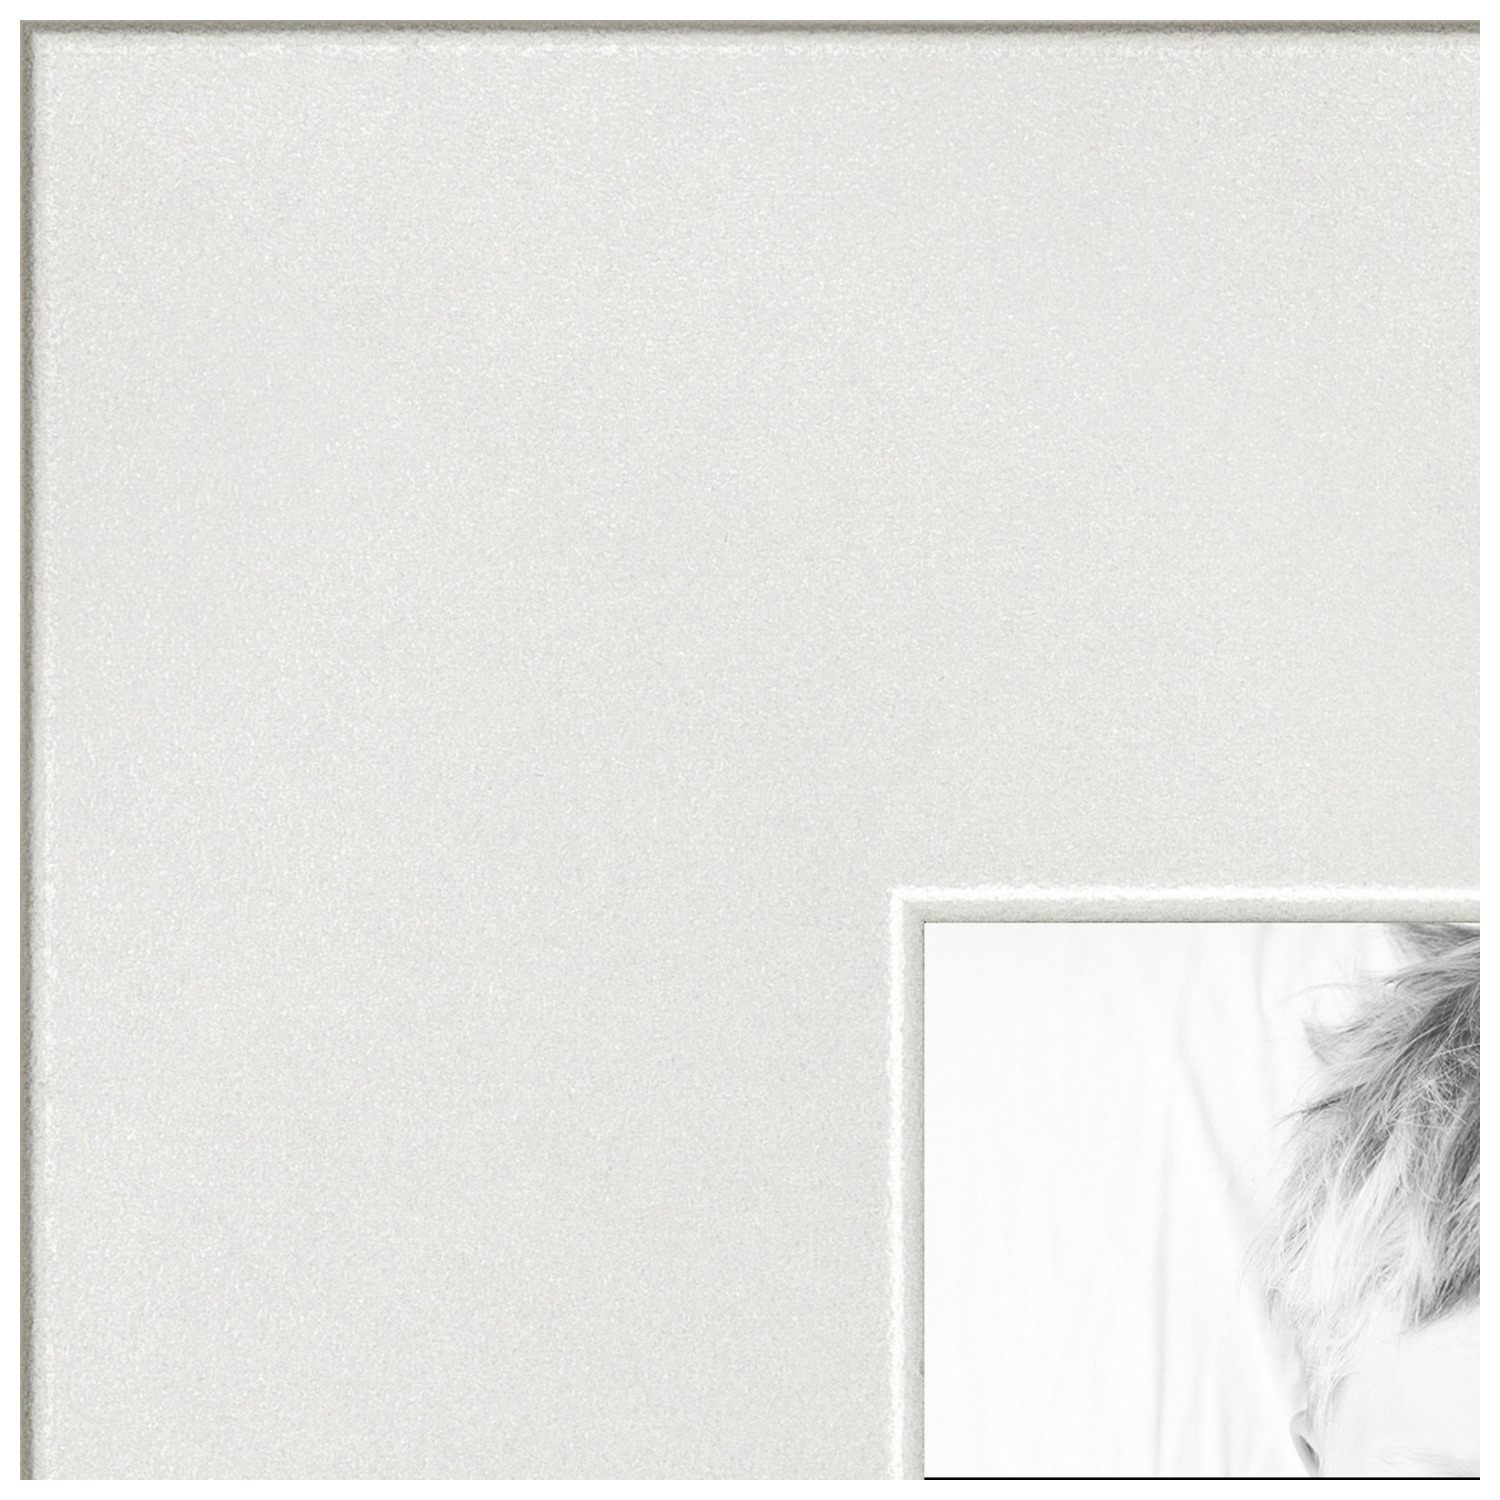 arttoframes 16x24 inch white picture frame this white mdf poster frame is great for your art or photos comes with styrene 3966